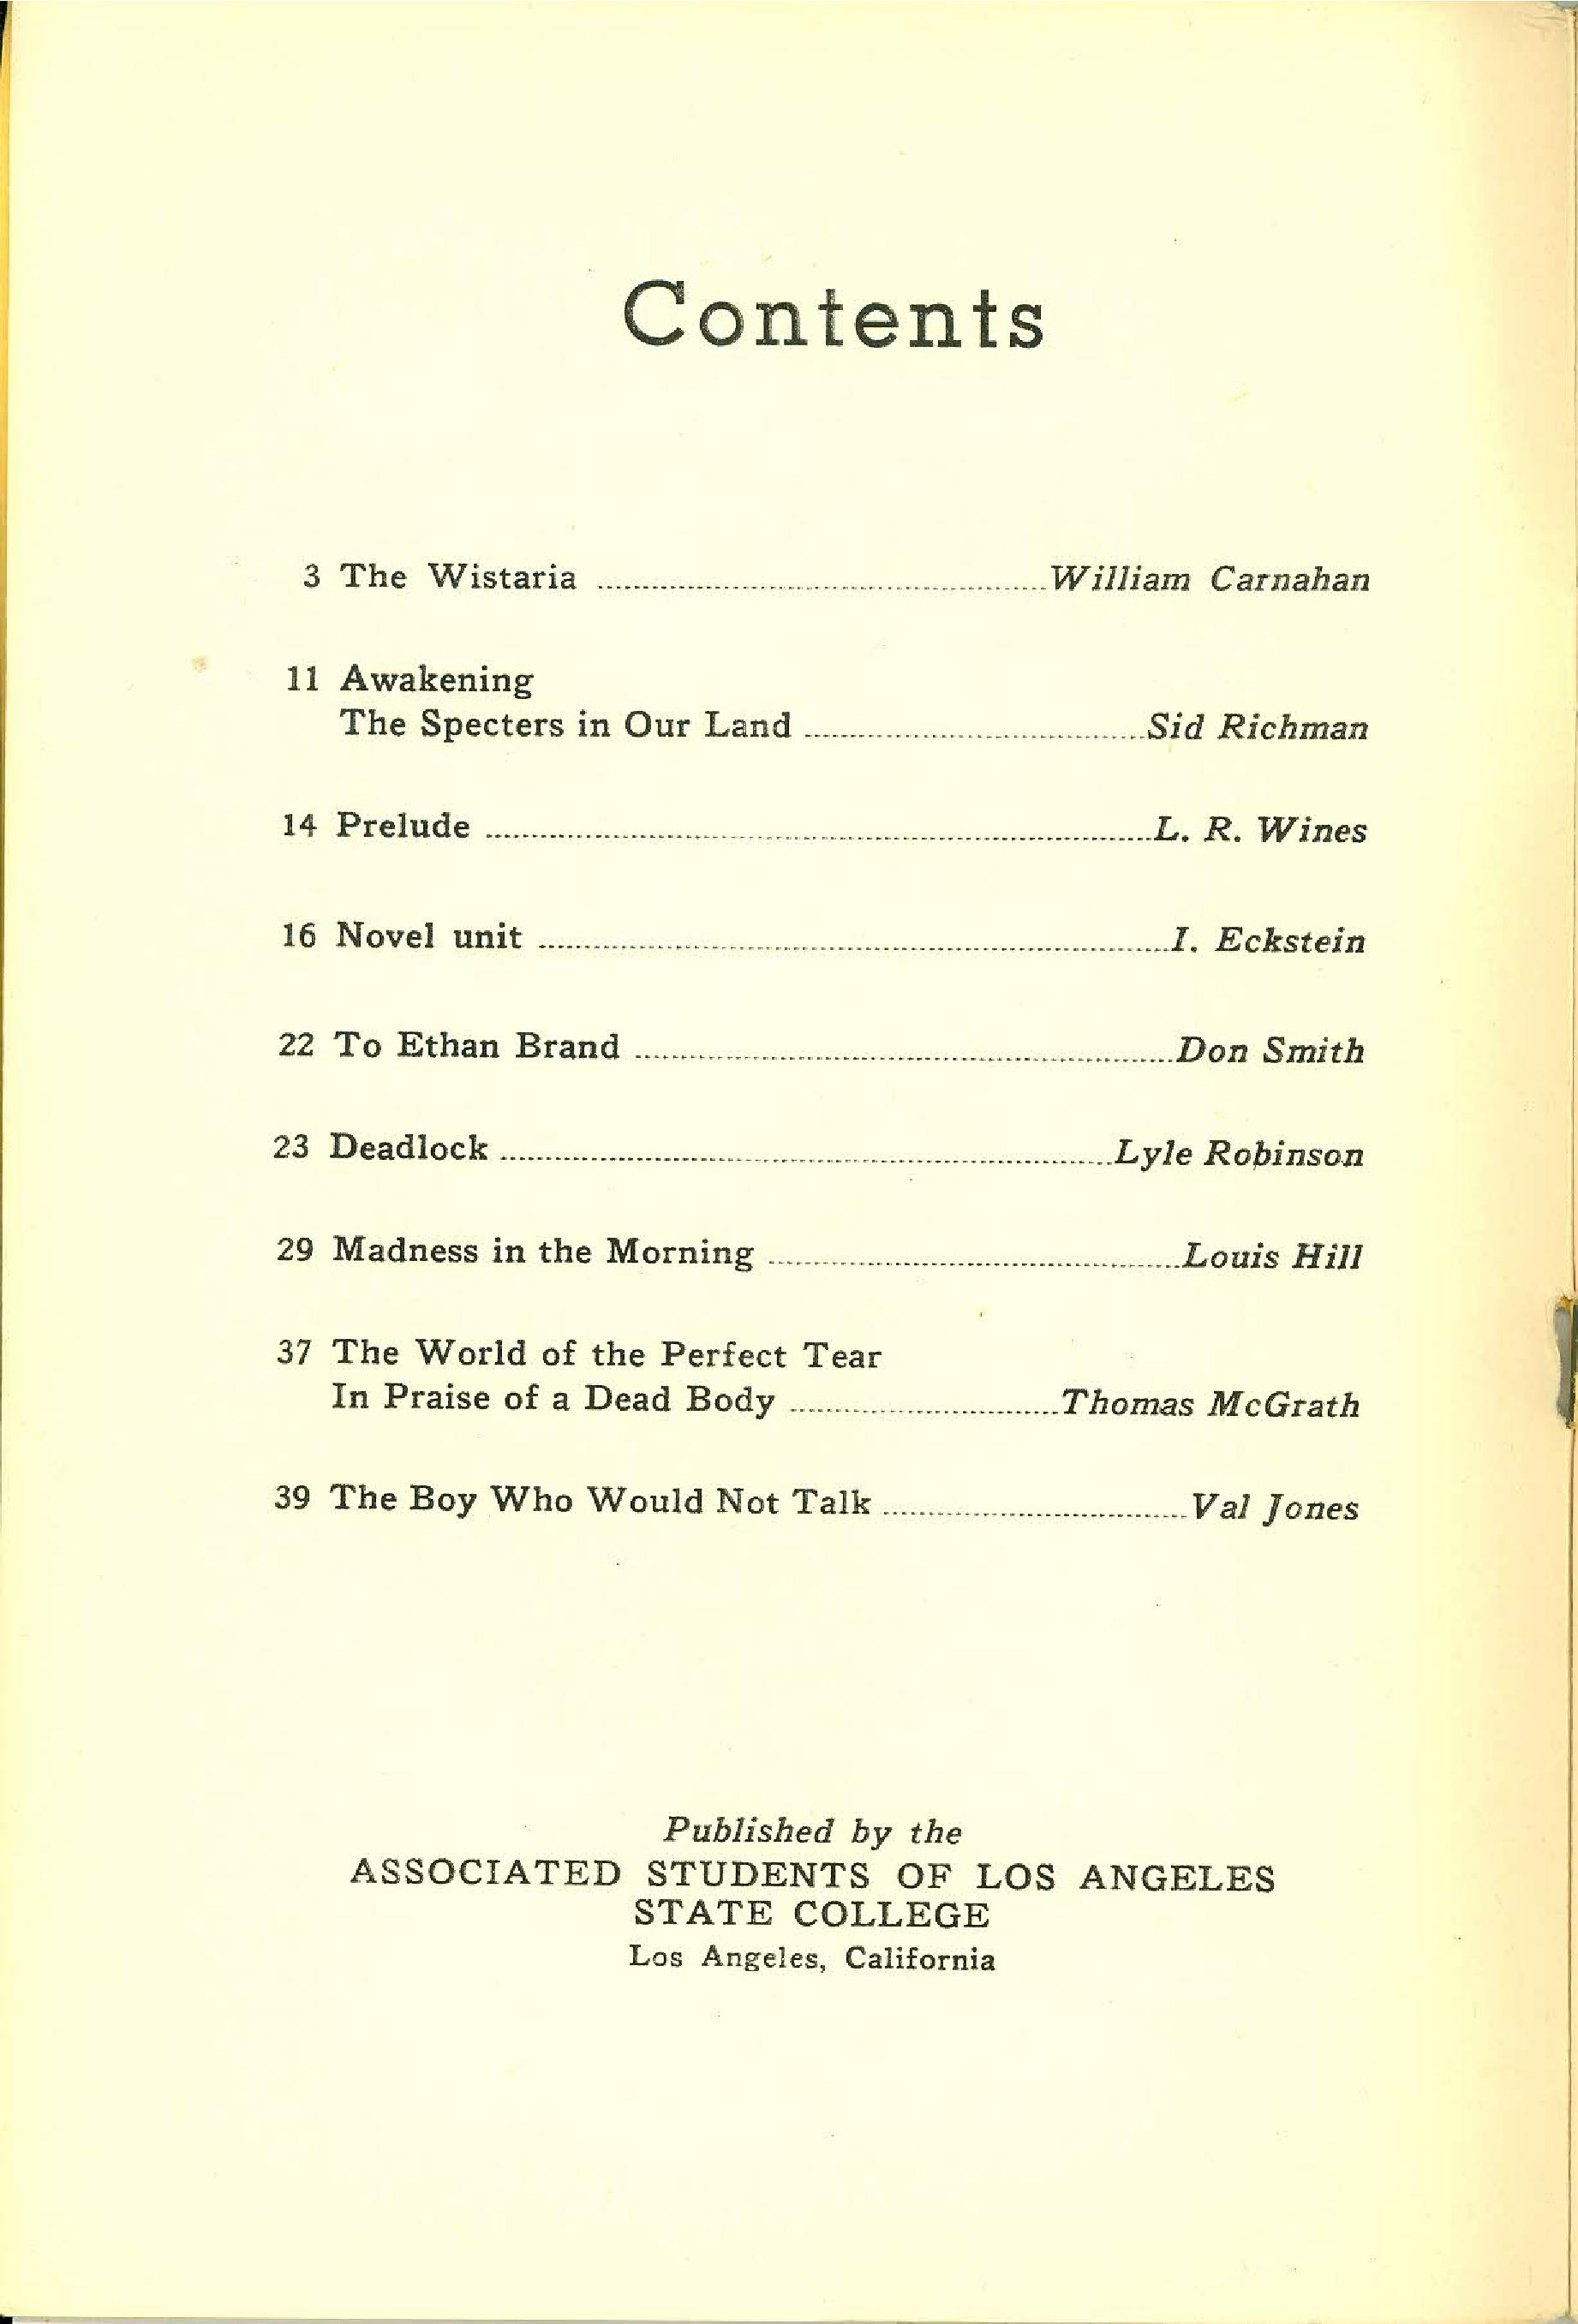 Statement Magazine 1950 Table of Contents